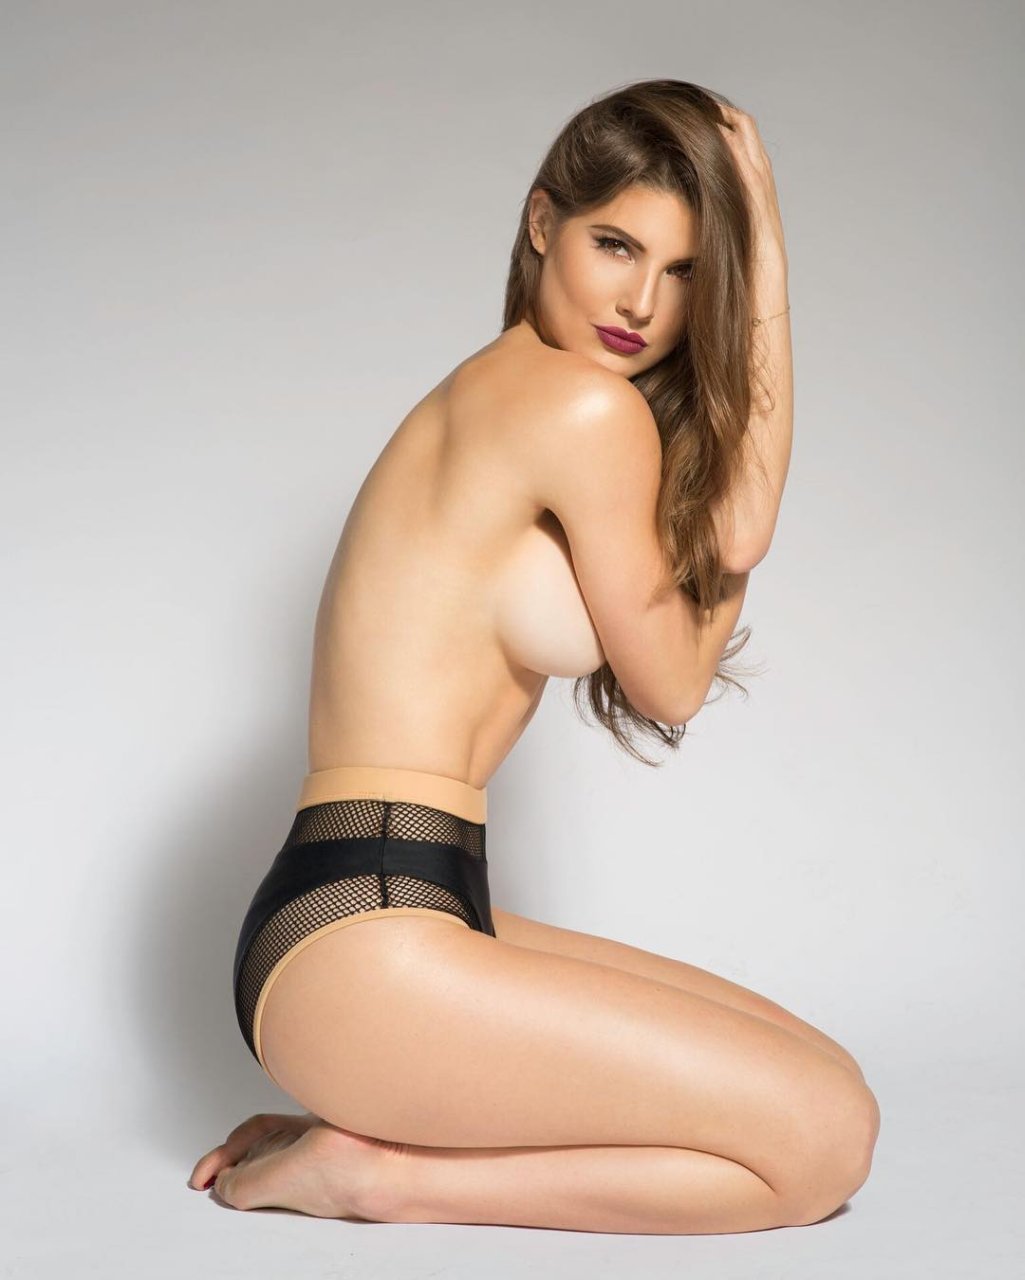 photo Amanda cerny nude playboy photo shoots